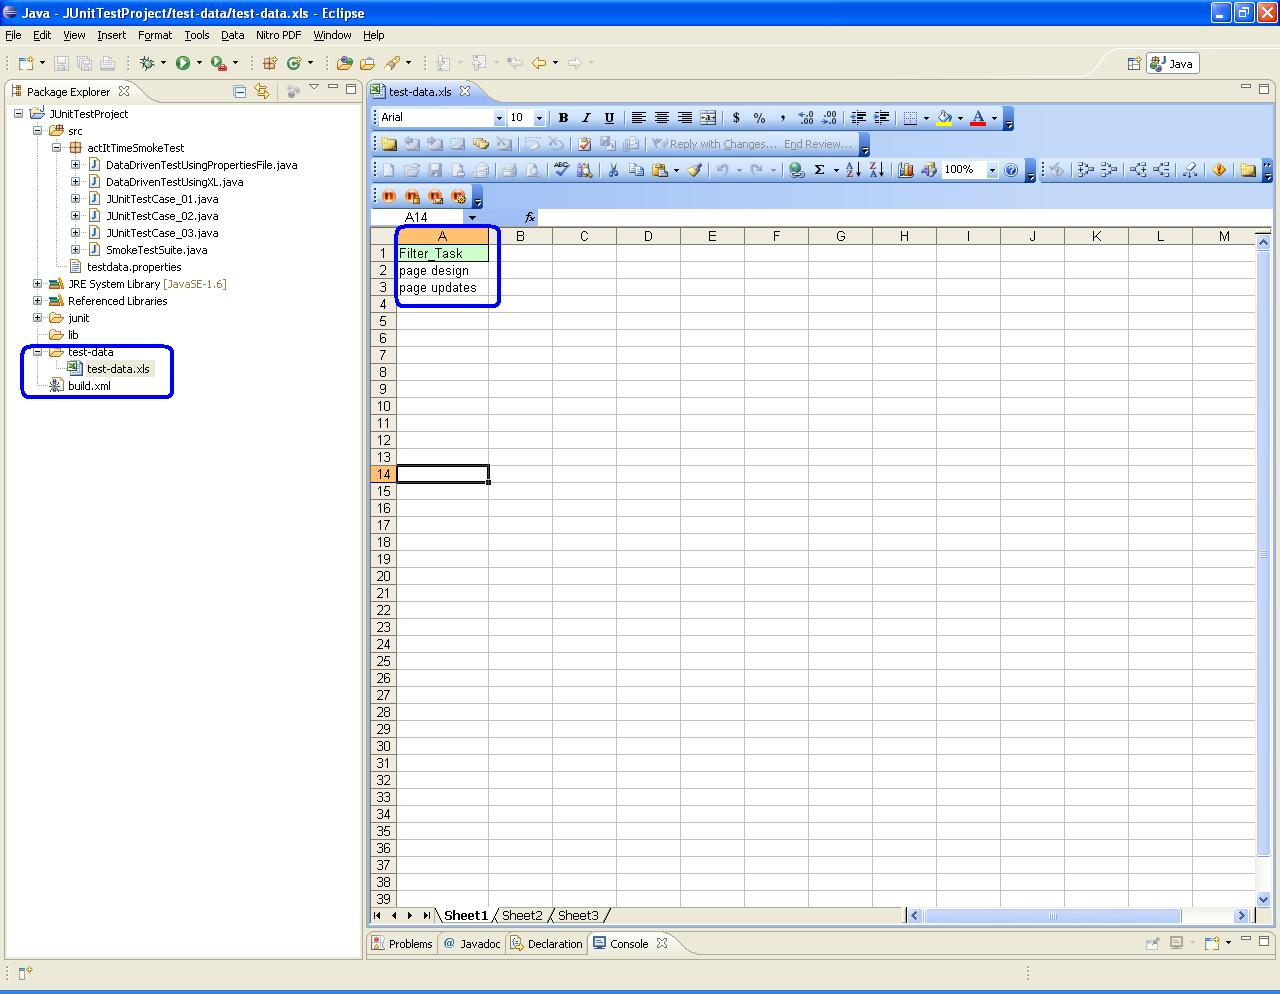 Selenium Automation Testing Data Driven Test Using Excel File